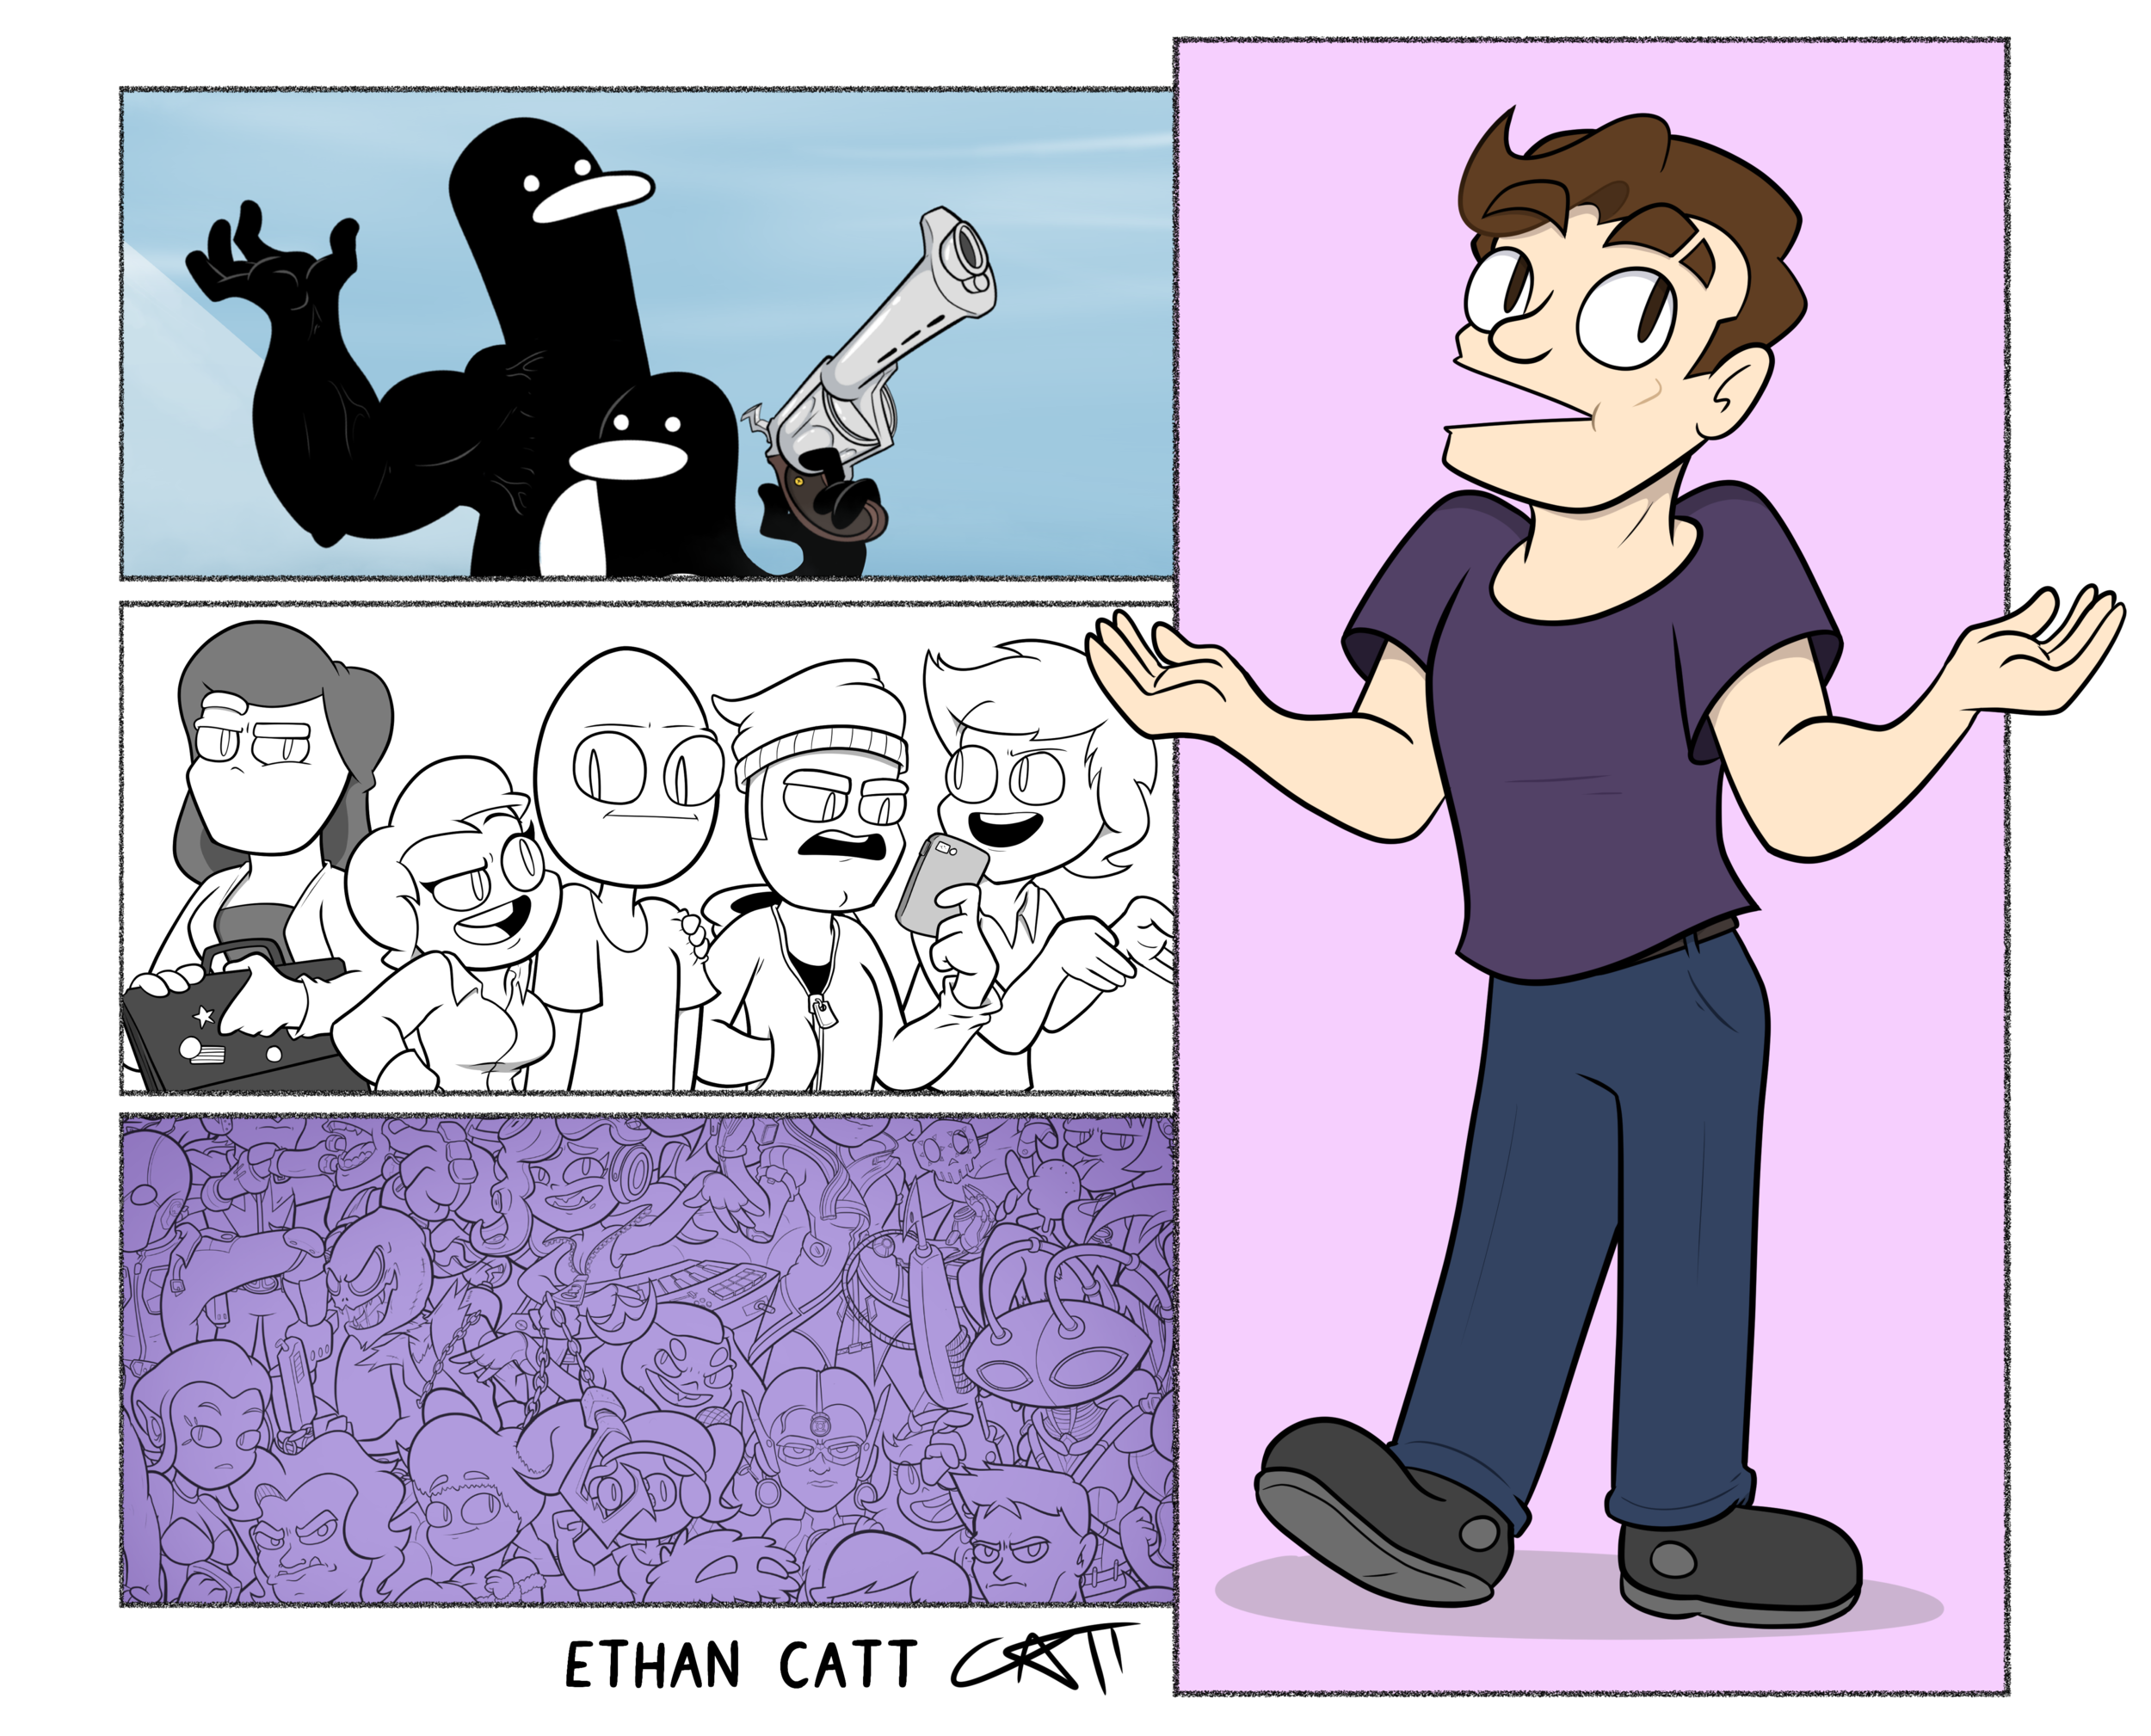 ETHAN CATT: His name's Ethan Catt, but you can call him Ethan Catt. Ethan is a Melbourne born-and-bred comics boy, and the writer/artist behind the webcomics  #Same  and  An Exercise in Futility  – two webcomics that are as humorous as they are existentially terrifying.